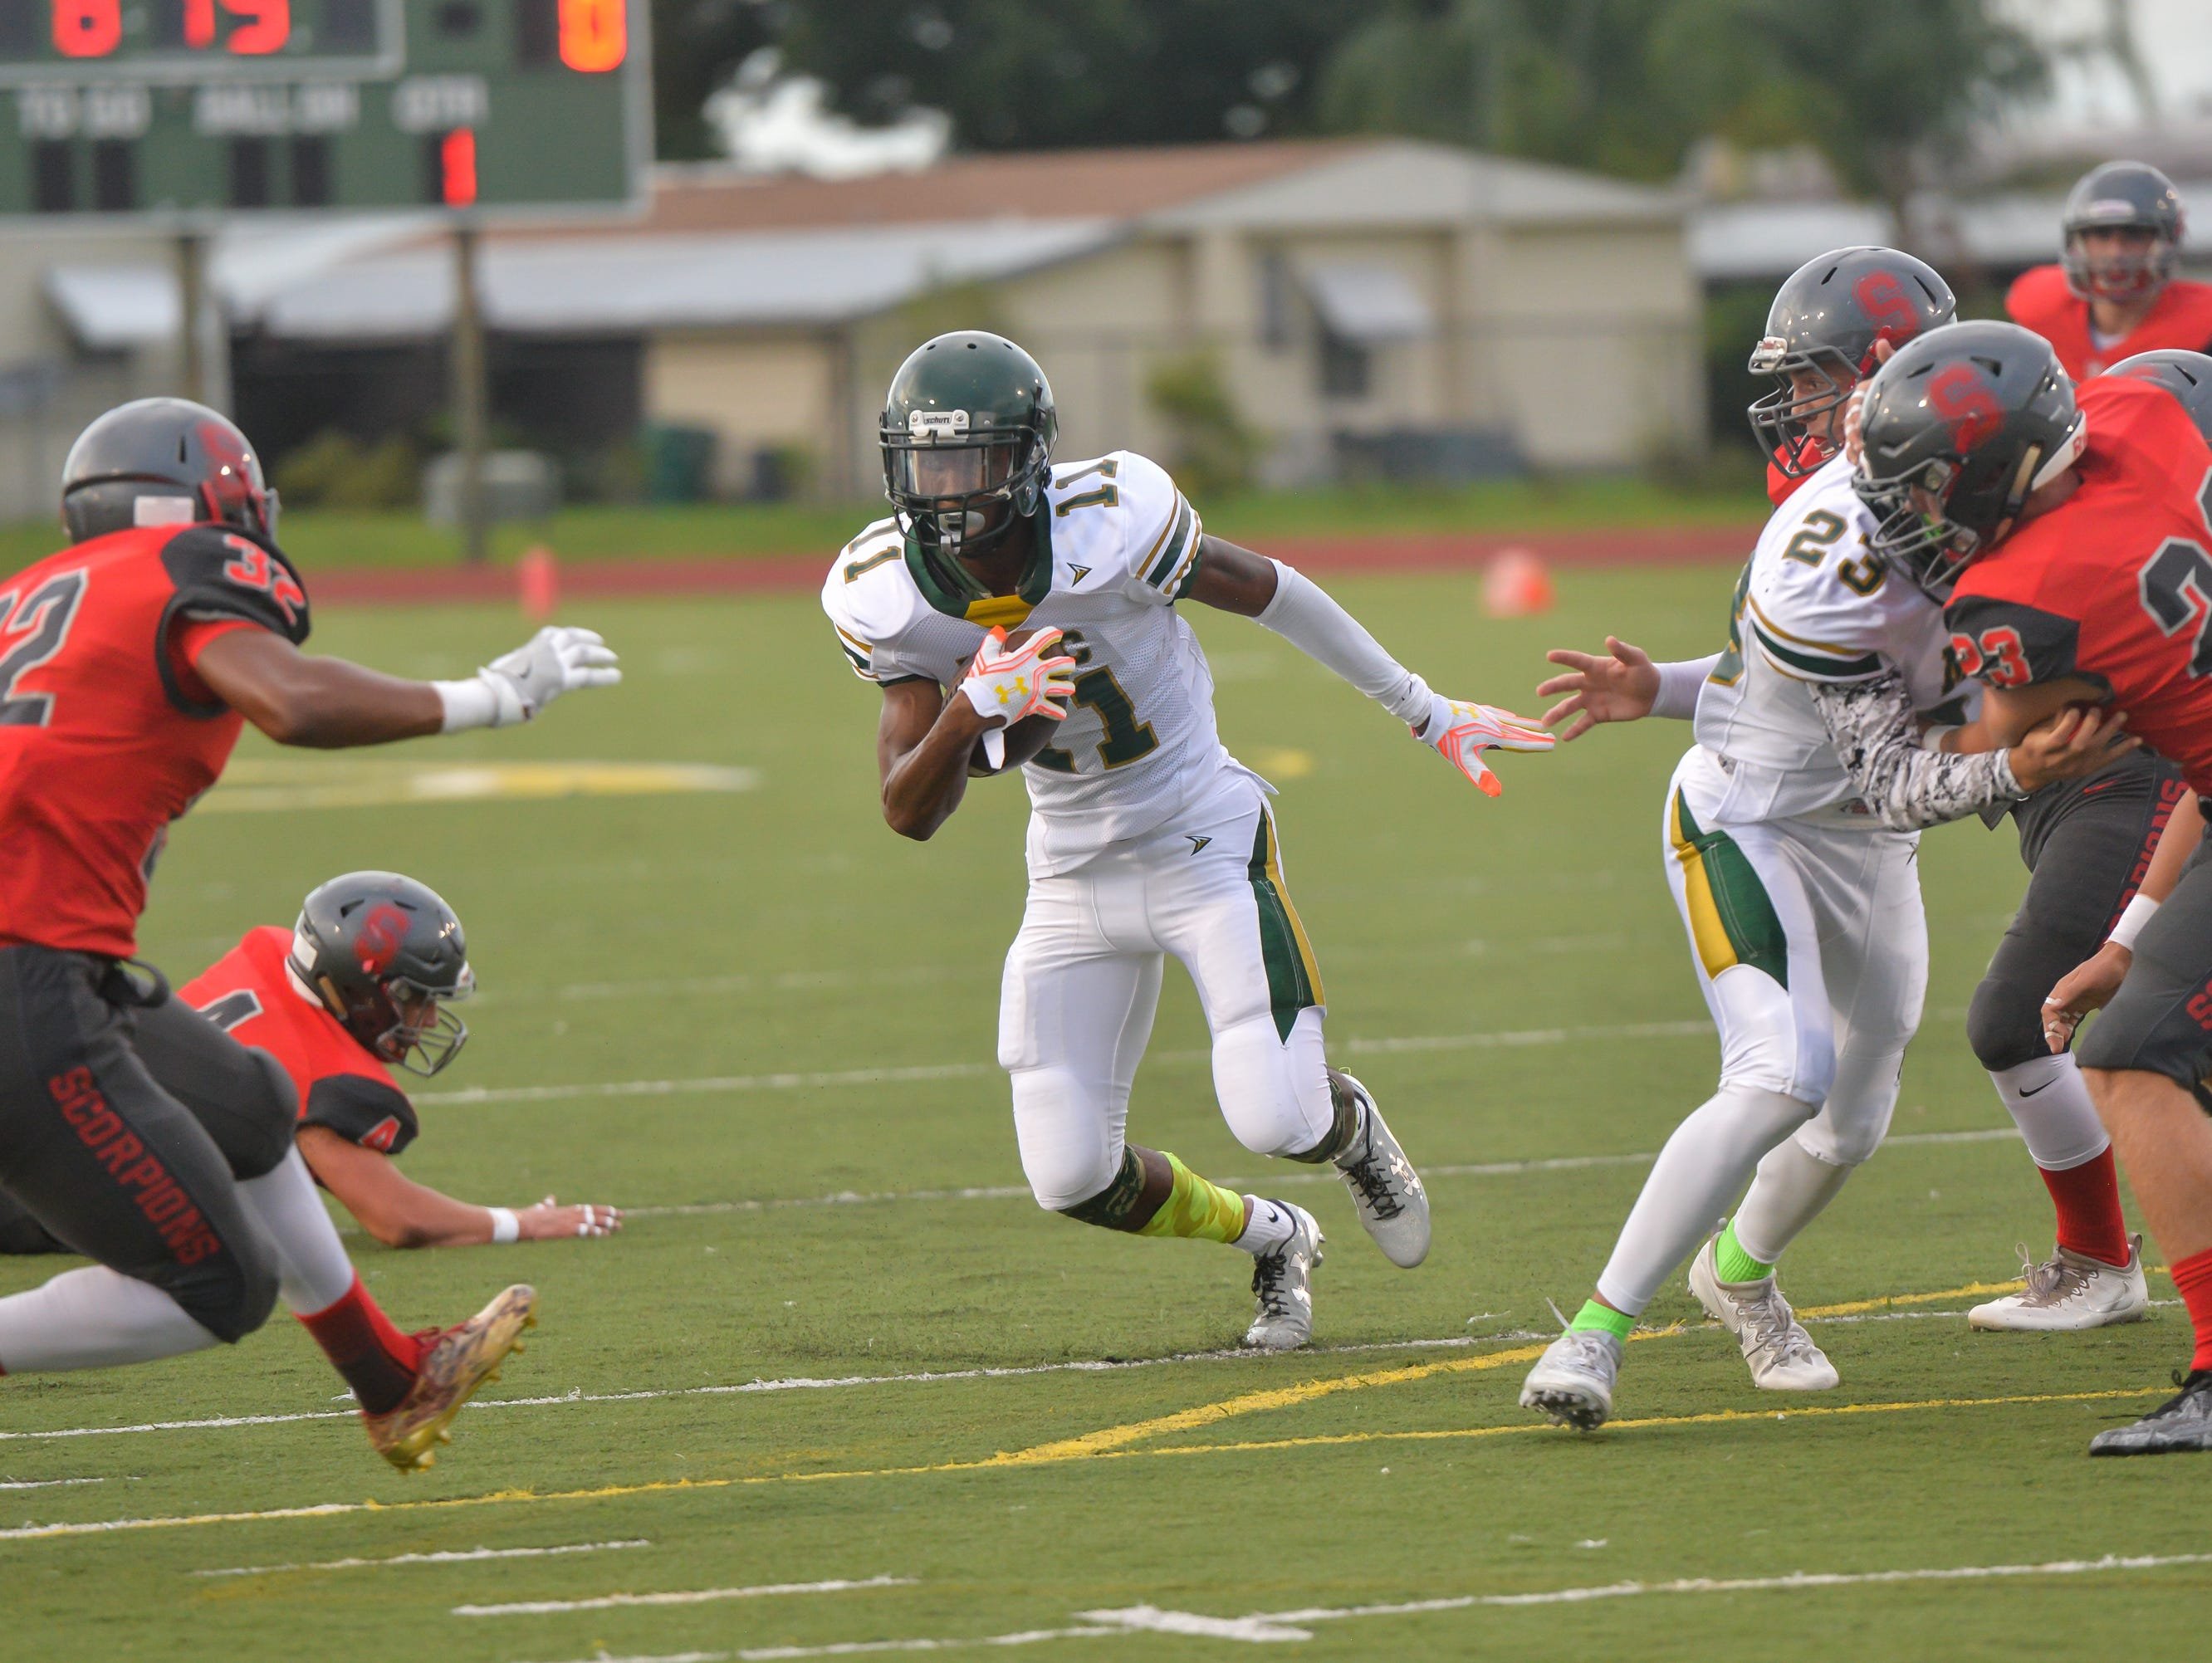 MCC's Lorenzo Hardy runs through an opening during the first half against Satellite High at Melbourne Central Catholic High School.